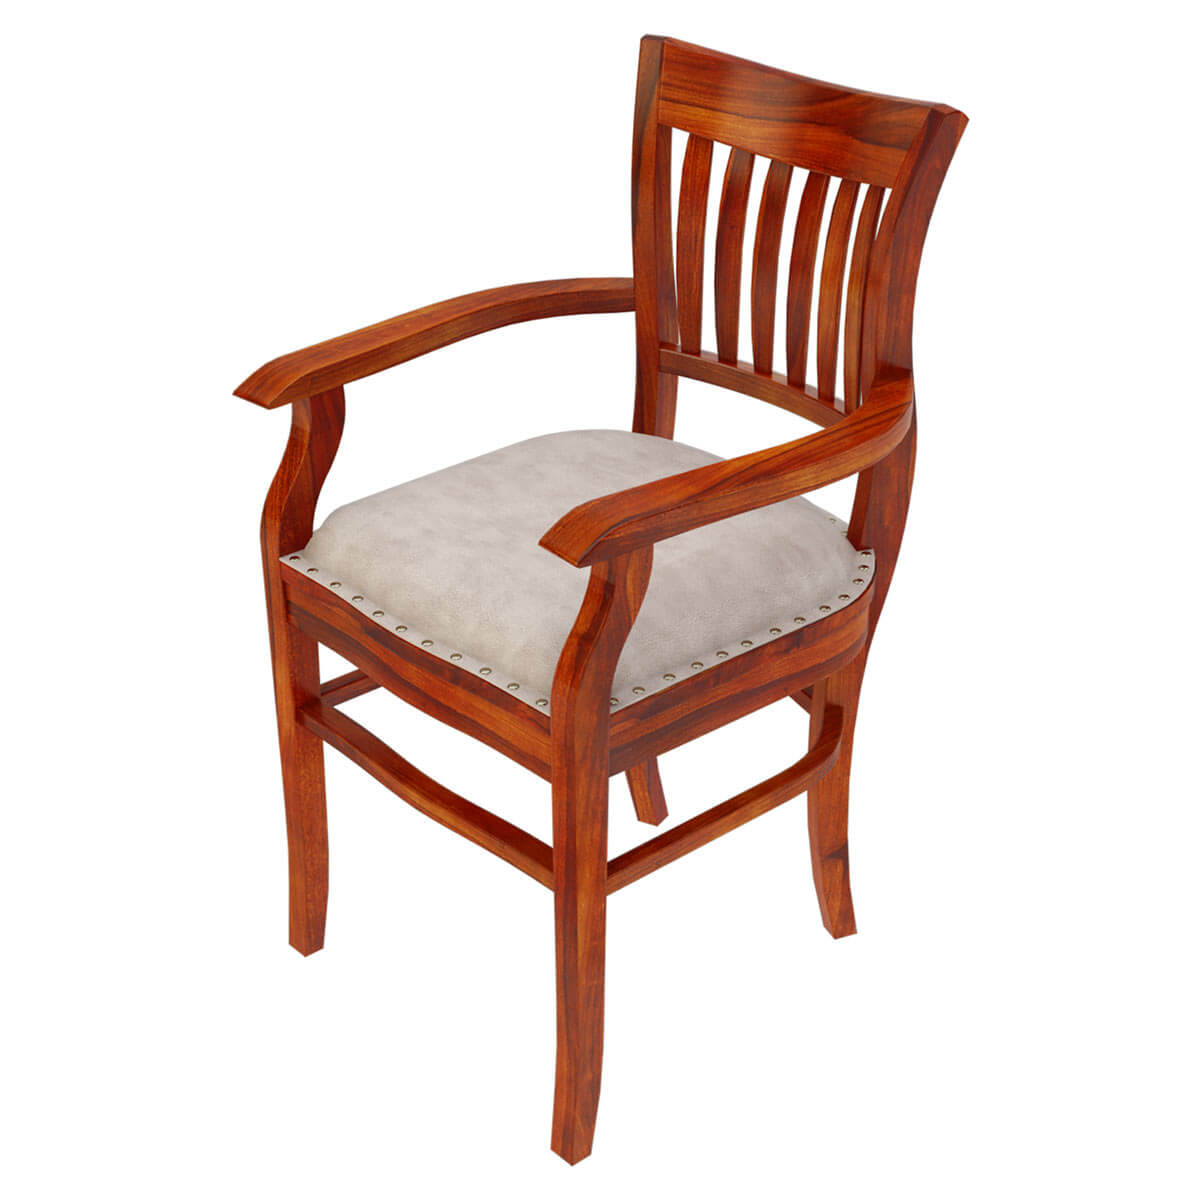 solid wood chairs hospital for sale arm chair leather cushion dining furniture